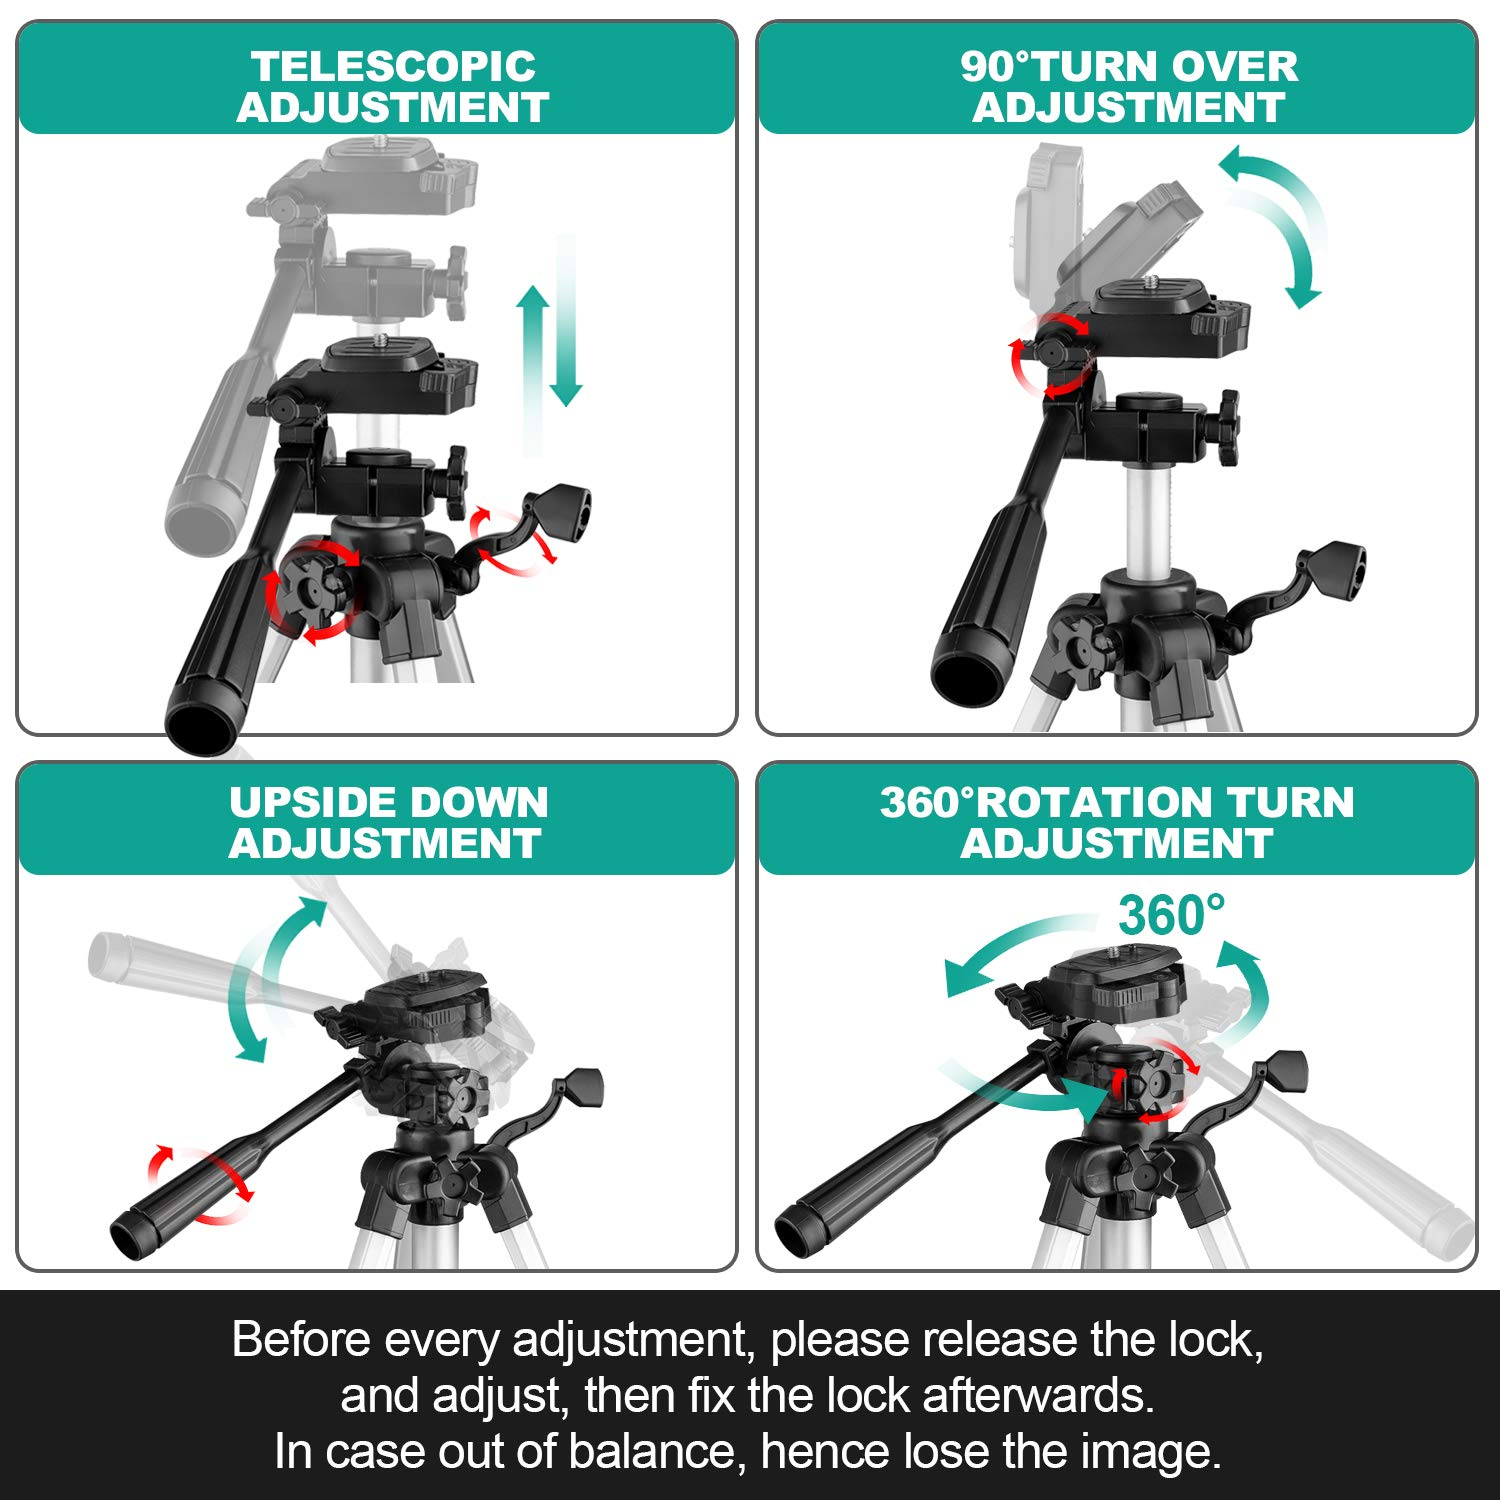 MAXLAPTER Telescope for Kids and Beginners, 70mm Travel Refractor Telescope for Astronomy with Adjustable Tripod, Smartphone Adapter, Camera Shutter Wire Control, Backpack by MAXLAPTER (Image #8)